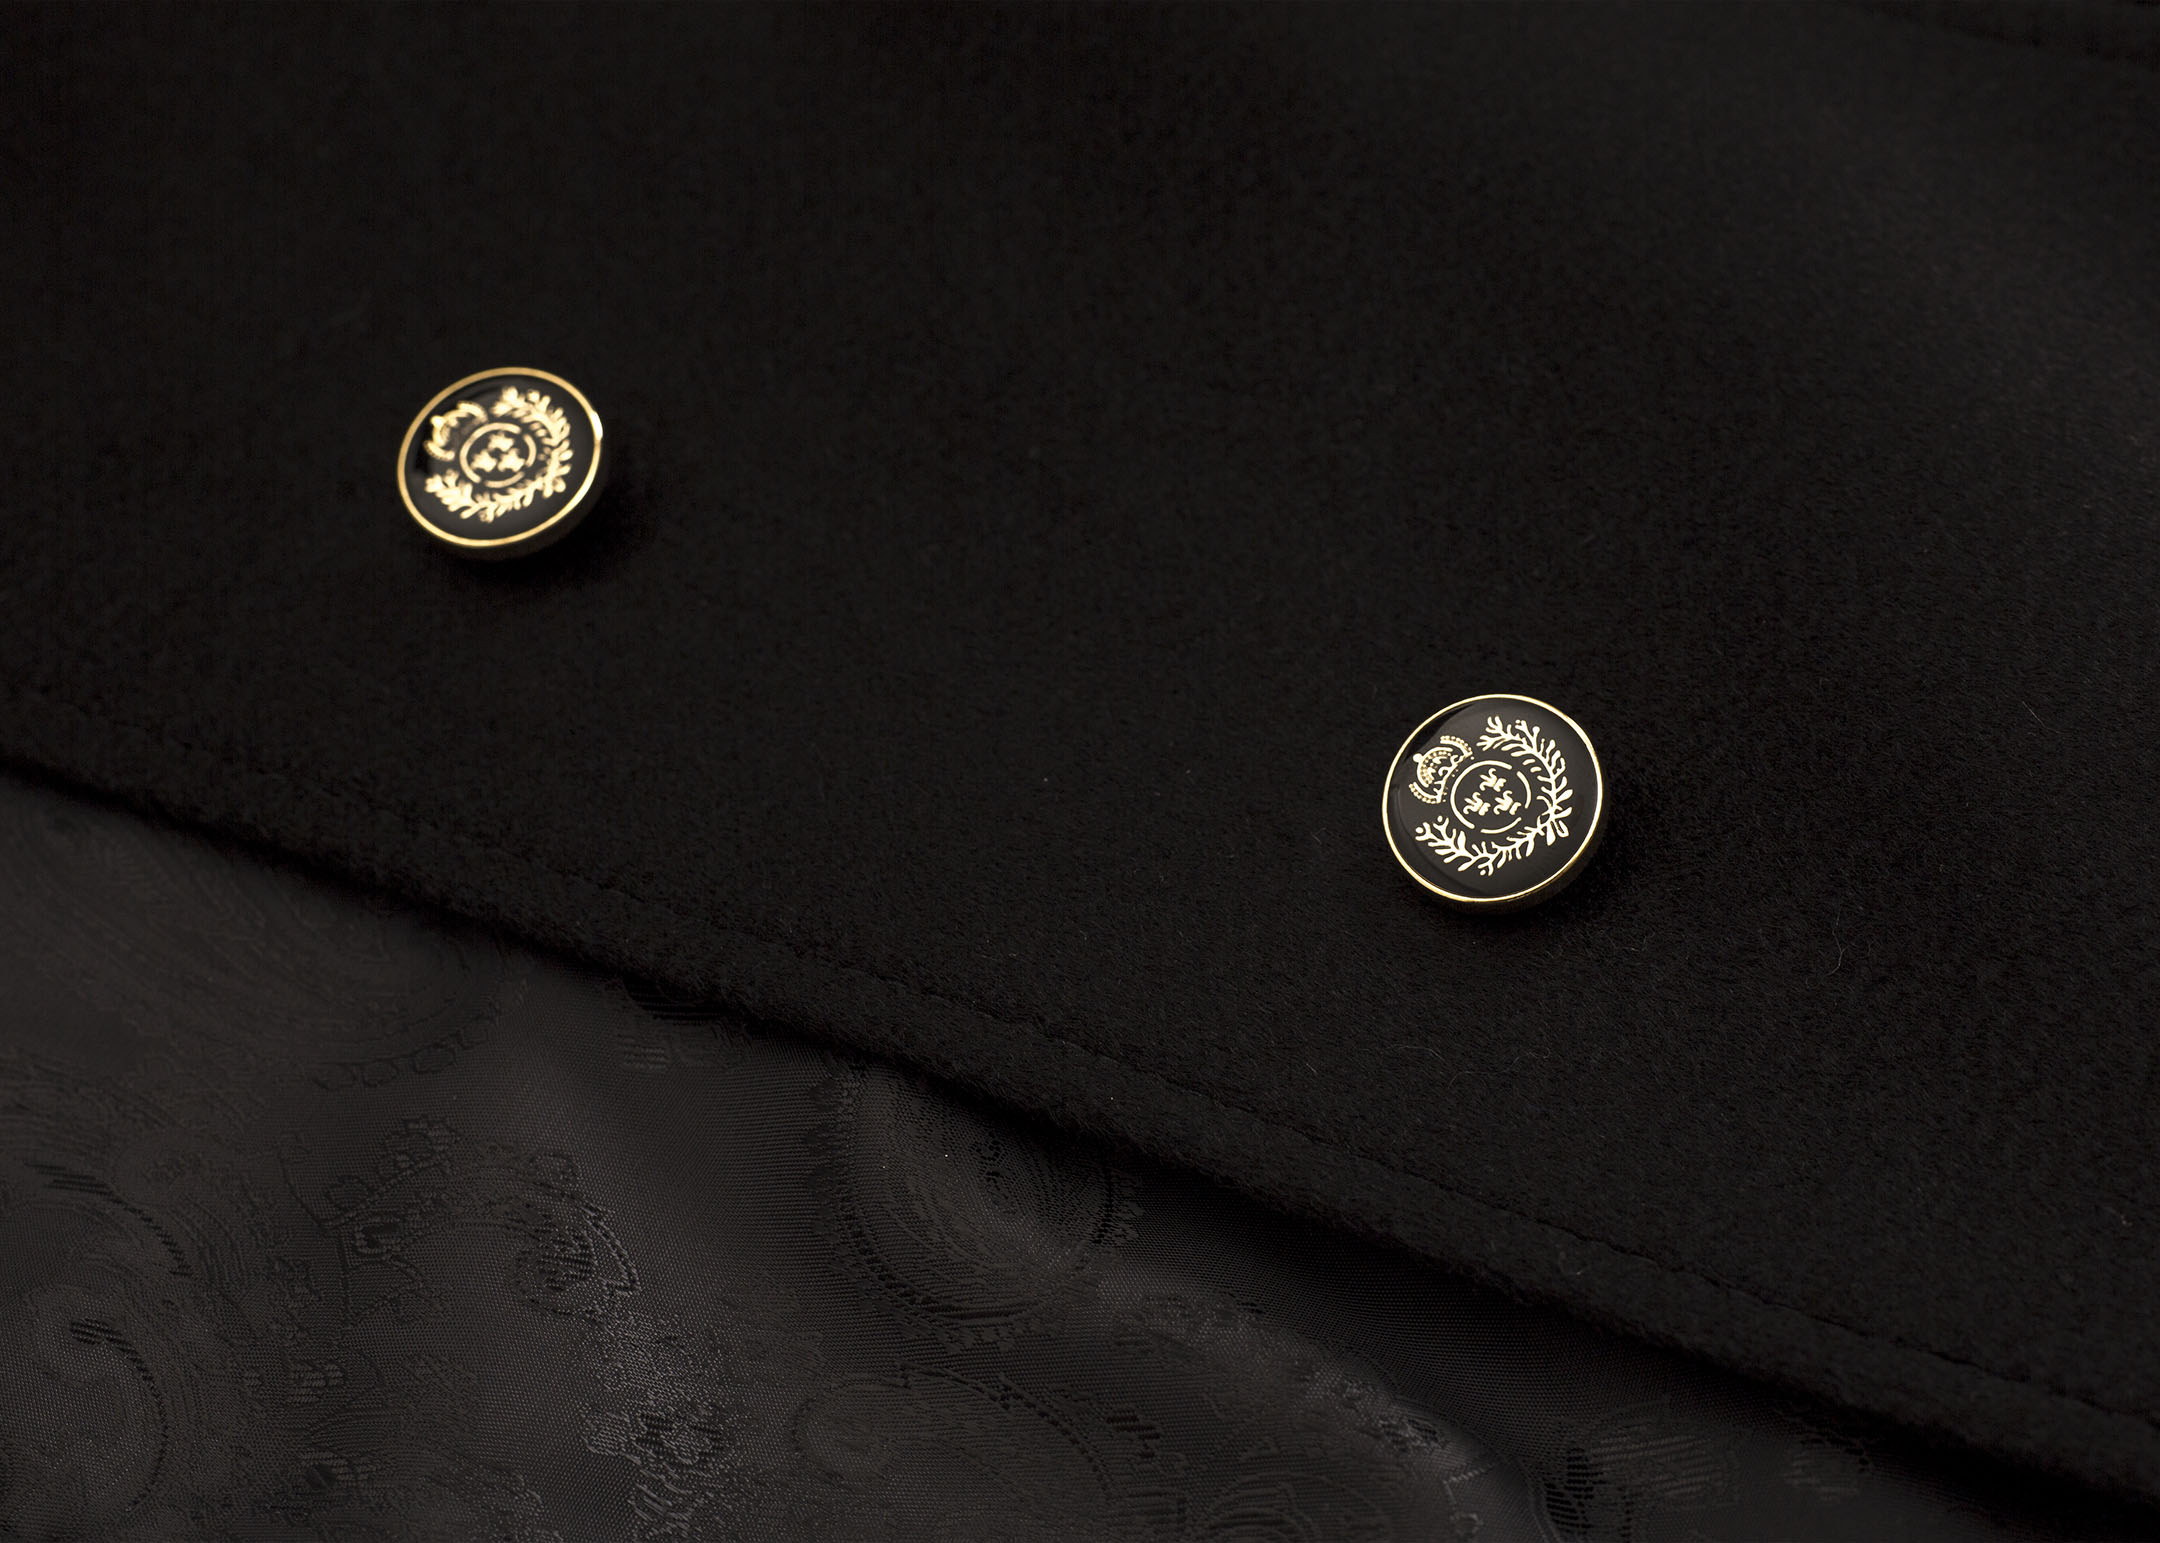 Meldes De Luxe – Fitted 100% cashmere coat with tailored collar - Black – Ref: 375-2-01